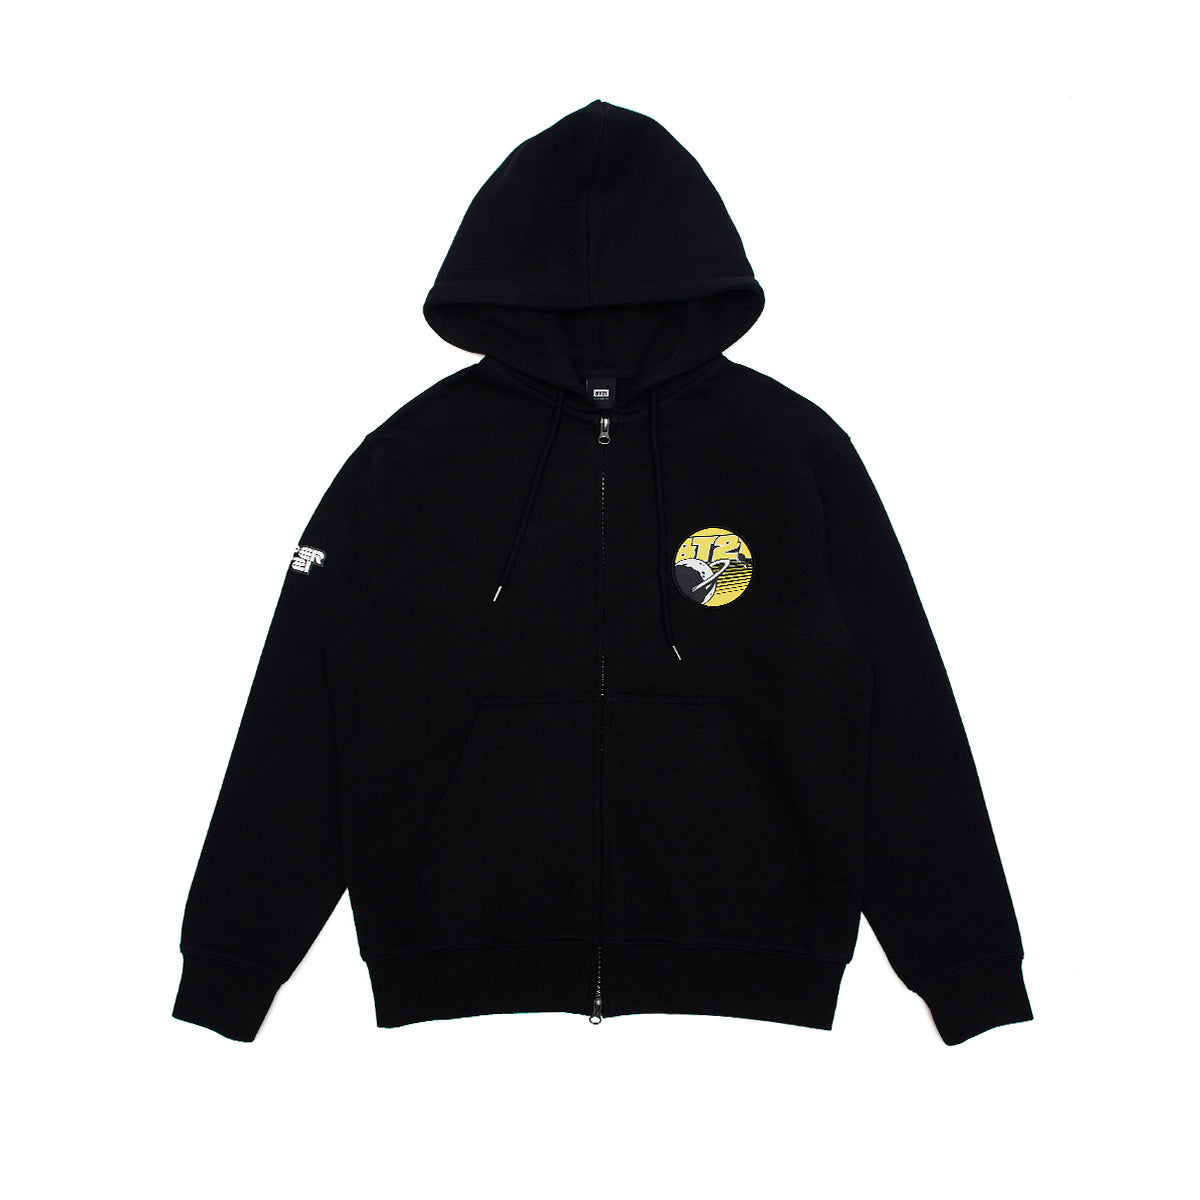 BT21 CHARACTERS Space Squad Zip Up Hoodie